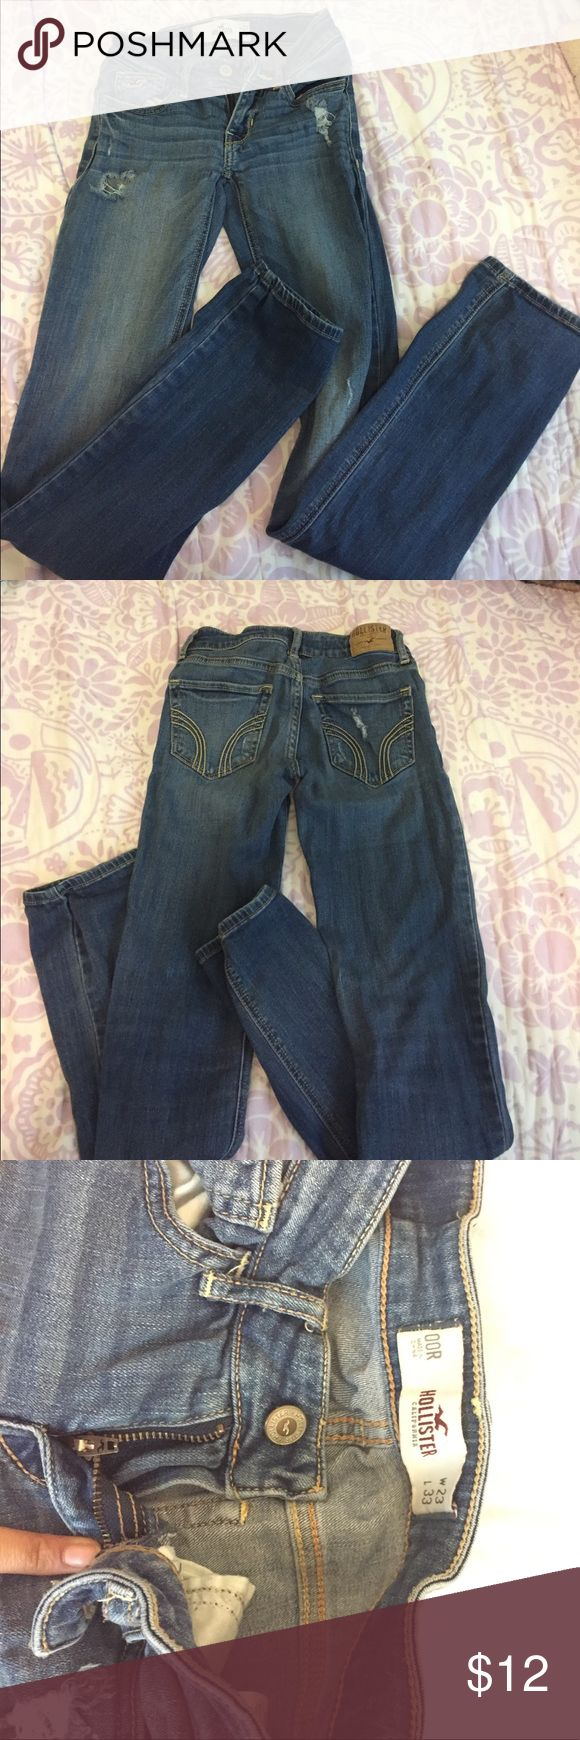 Mid-dark blue ripped jeans hollister size 23 Darkish blue ripped size 23 (00) hollister jeans. Hollister Jeans Skinny